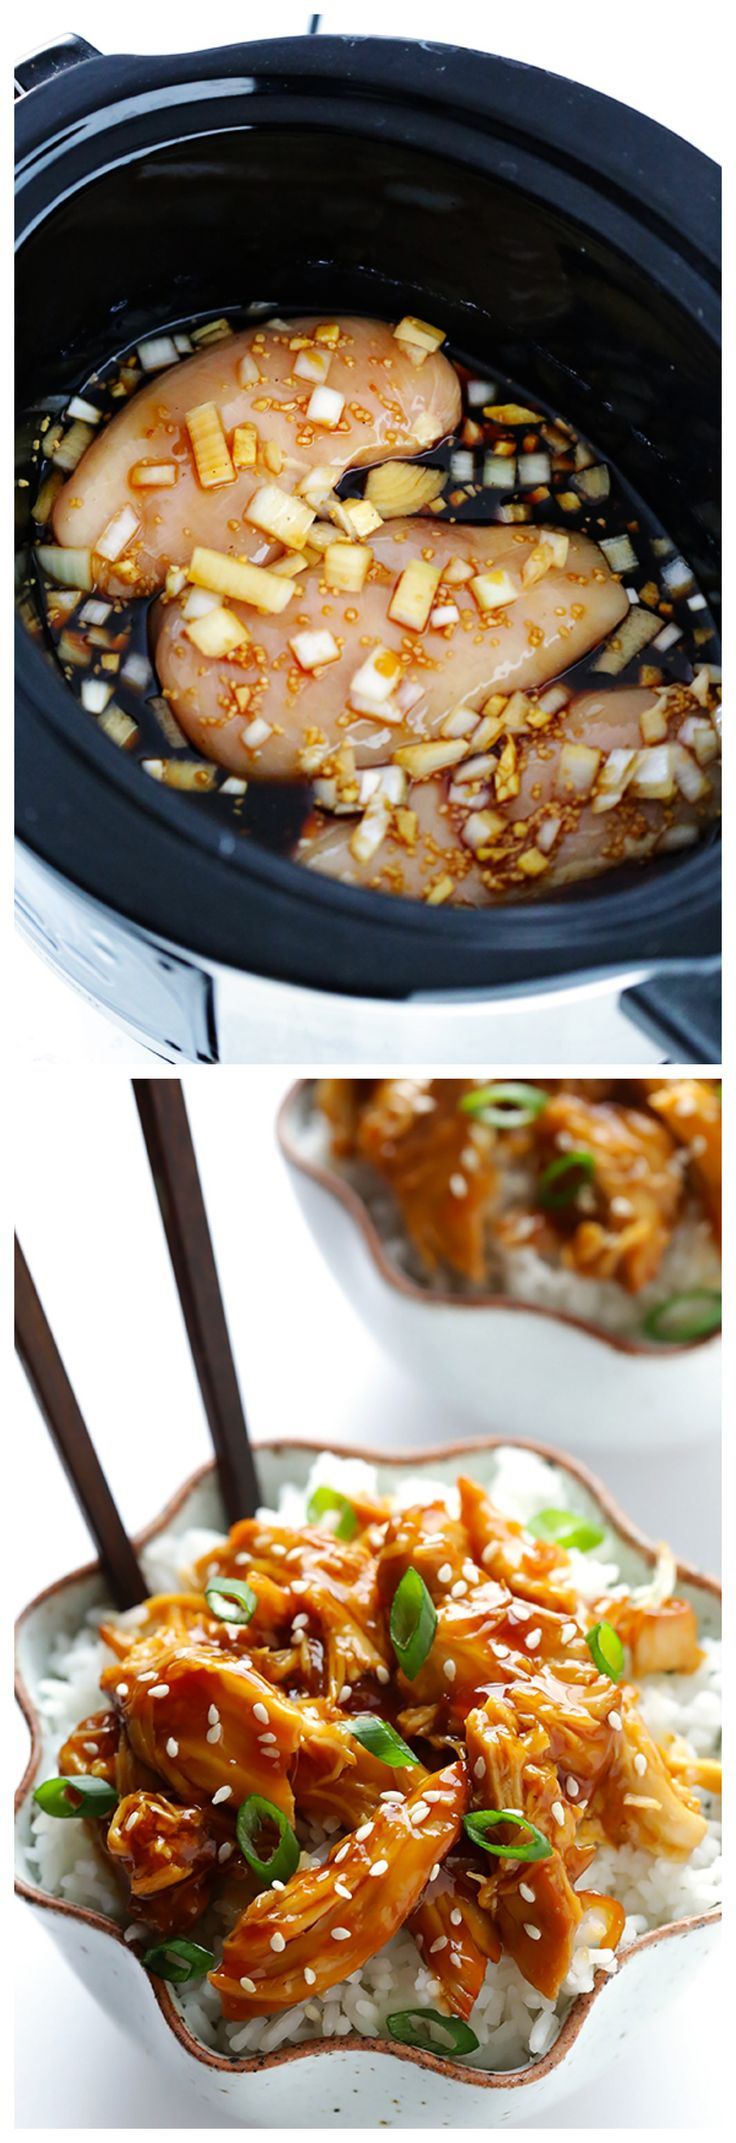 Slow Cooker Teriyaki Chicken -- easy to make, and perfect for serving over rice, or in sandwiches, or whatever sounds good! | gimmesomeoven.com